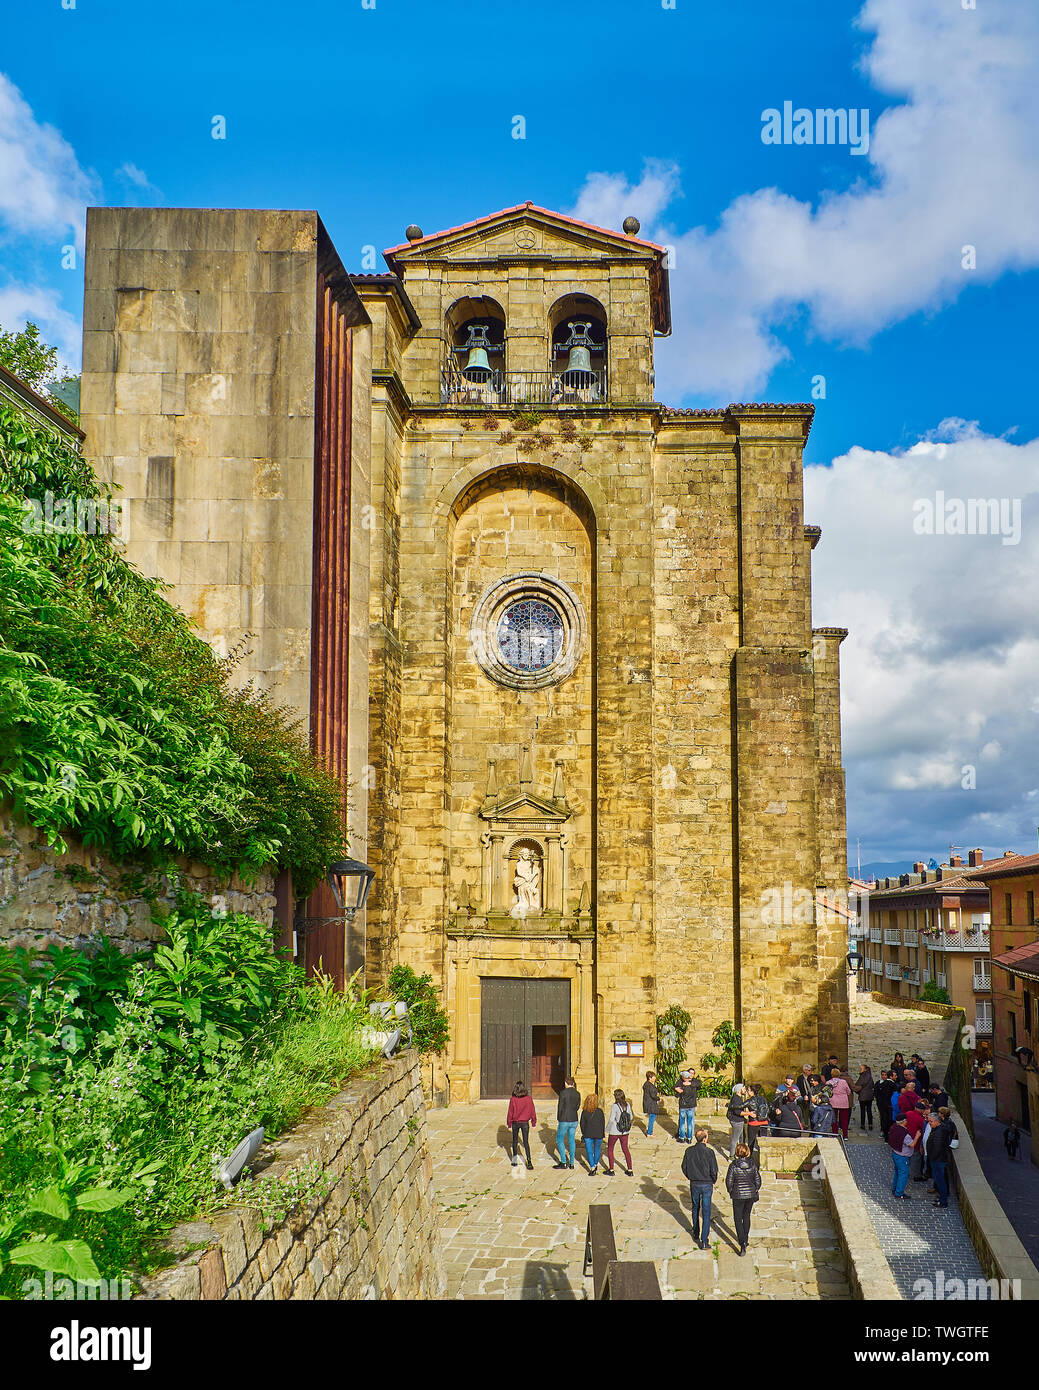 Principal facade of the Church of San Juan Bautista, located in the fishing village of Pasajes de San Juan on a sunny day. Gipuzkoa, Spain. - Stock Image